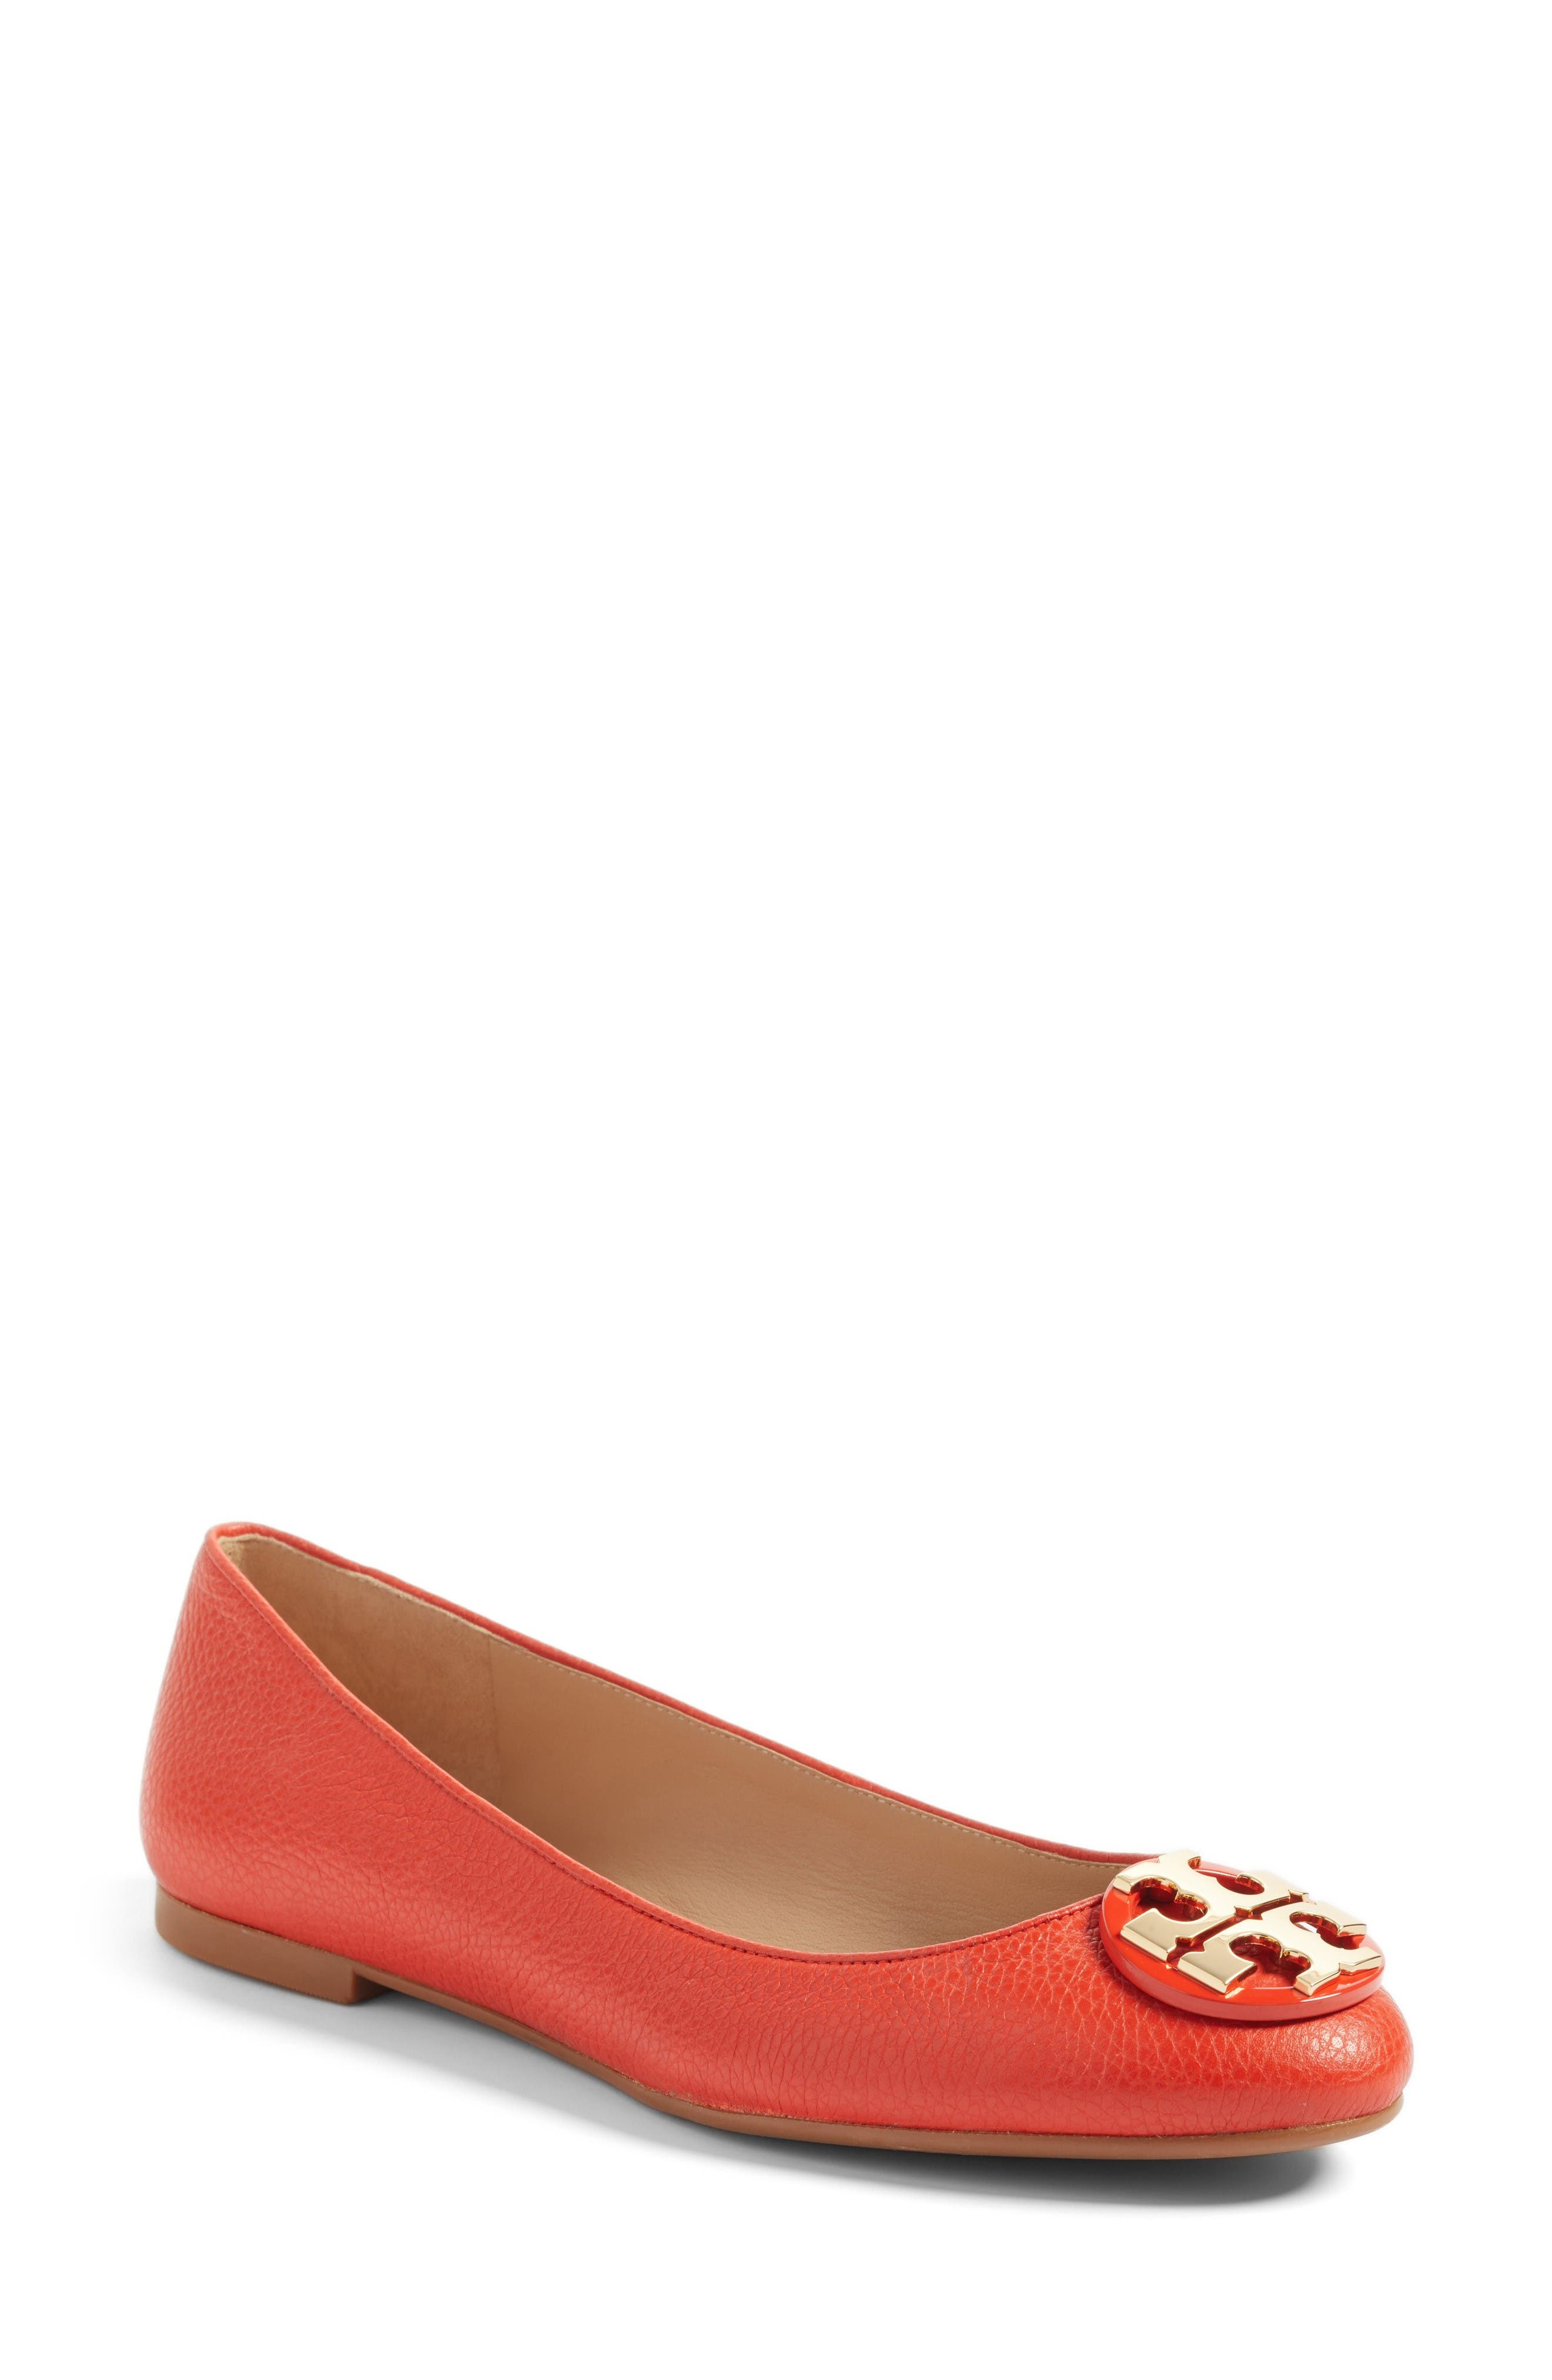 Alternate Image 1 Selected - Tory Burch Claire Ballerina Flat (Women)